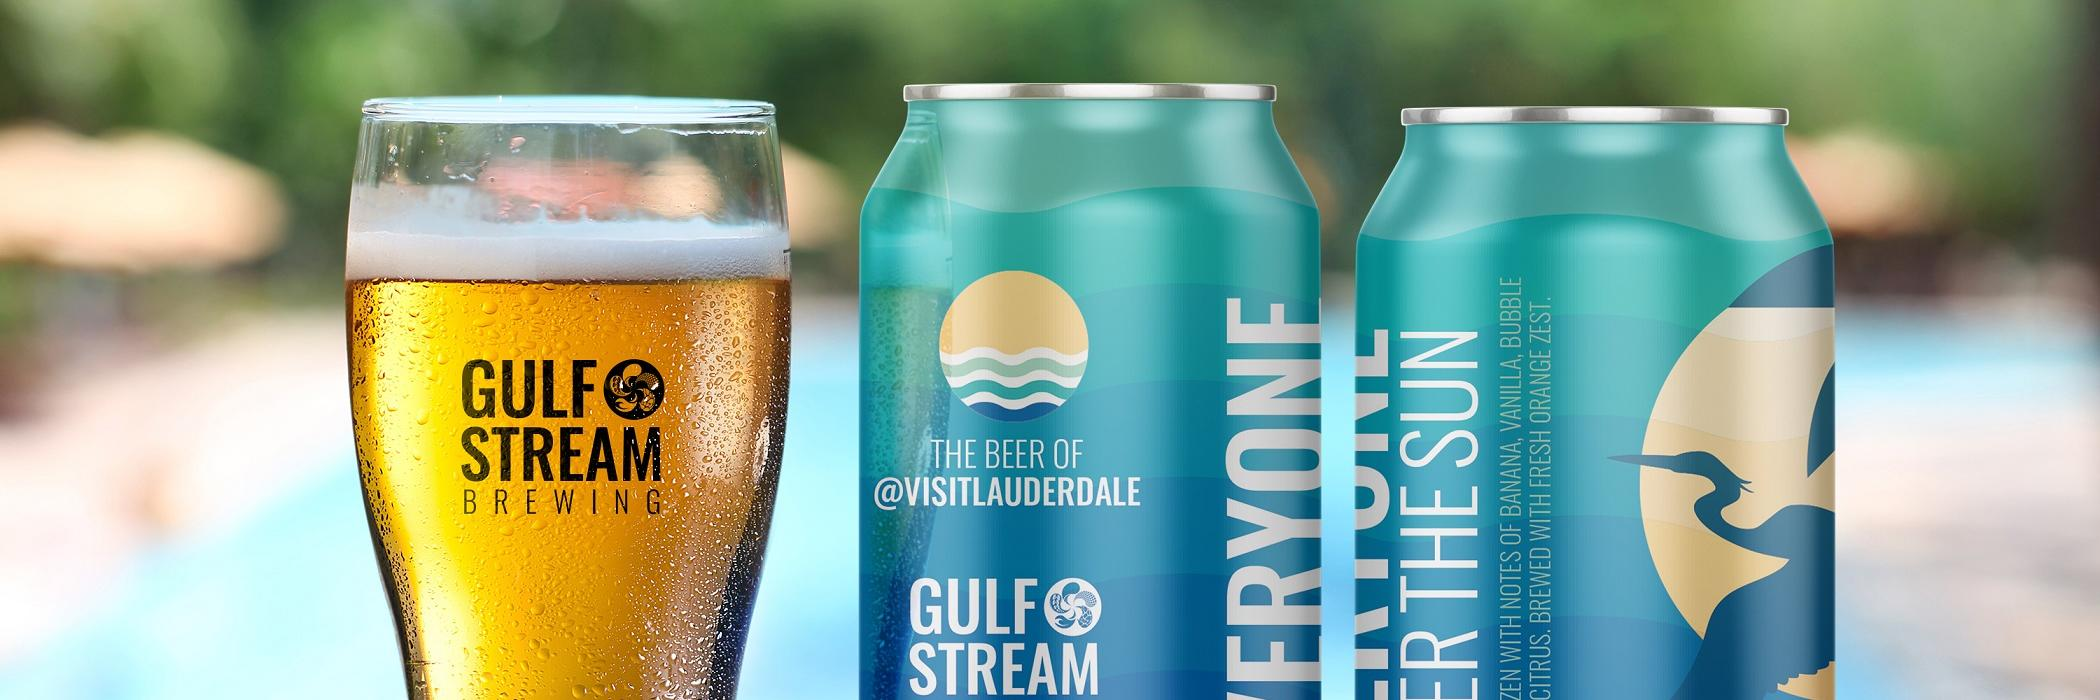 Gulf Stream Brewery's Everyone Under the Sun Beer